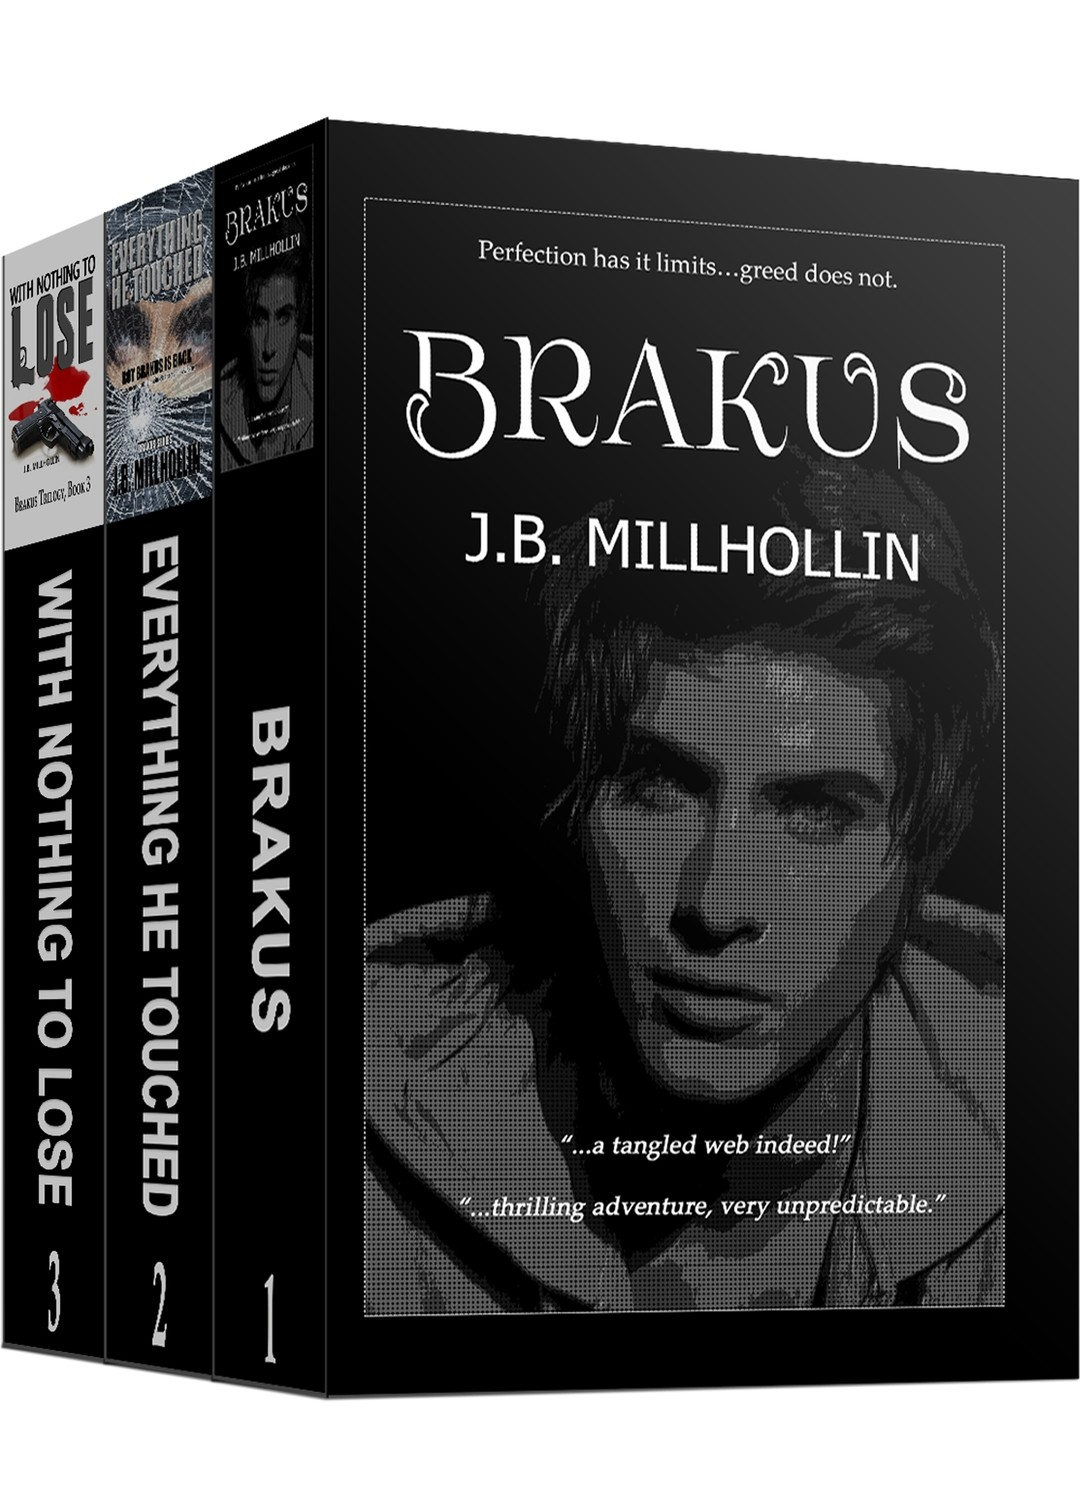 Brakus Trilogy Paperback Set (Books 1-3)